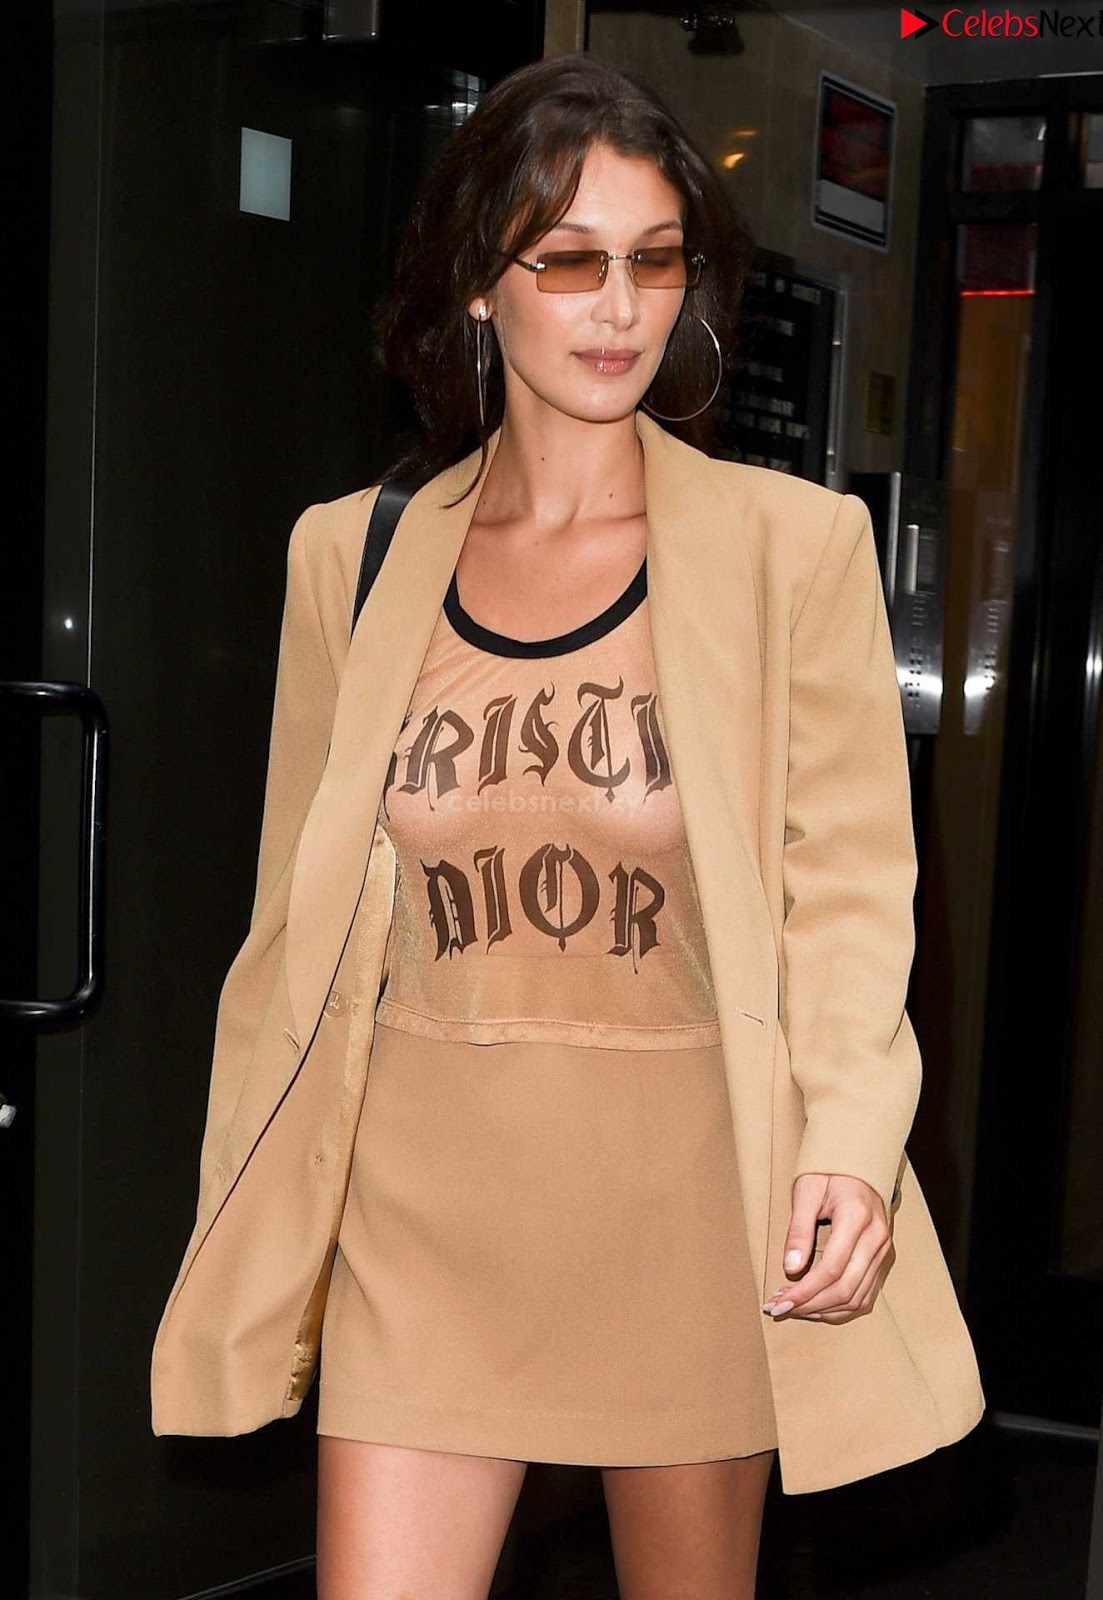 Bella Hadid See Through Top beautiful soft boobs and nipples in transparent top ~ CelebrityBooty.co Exclusive